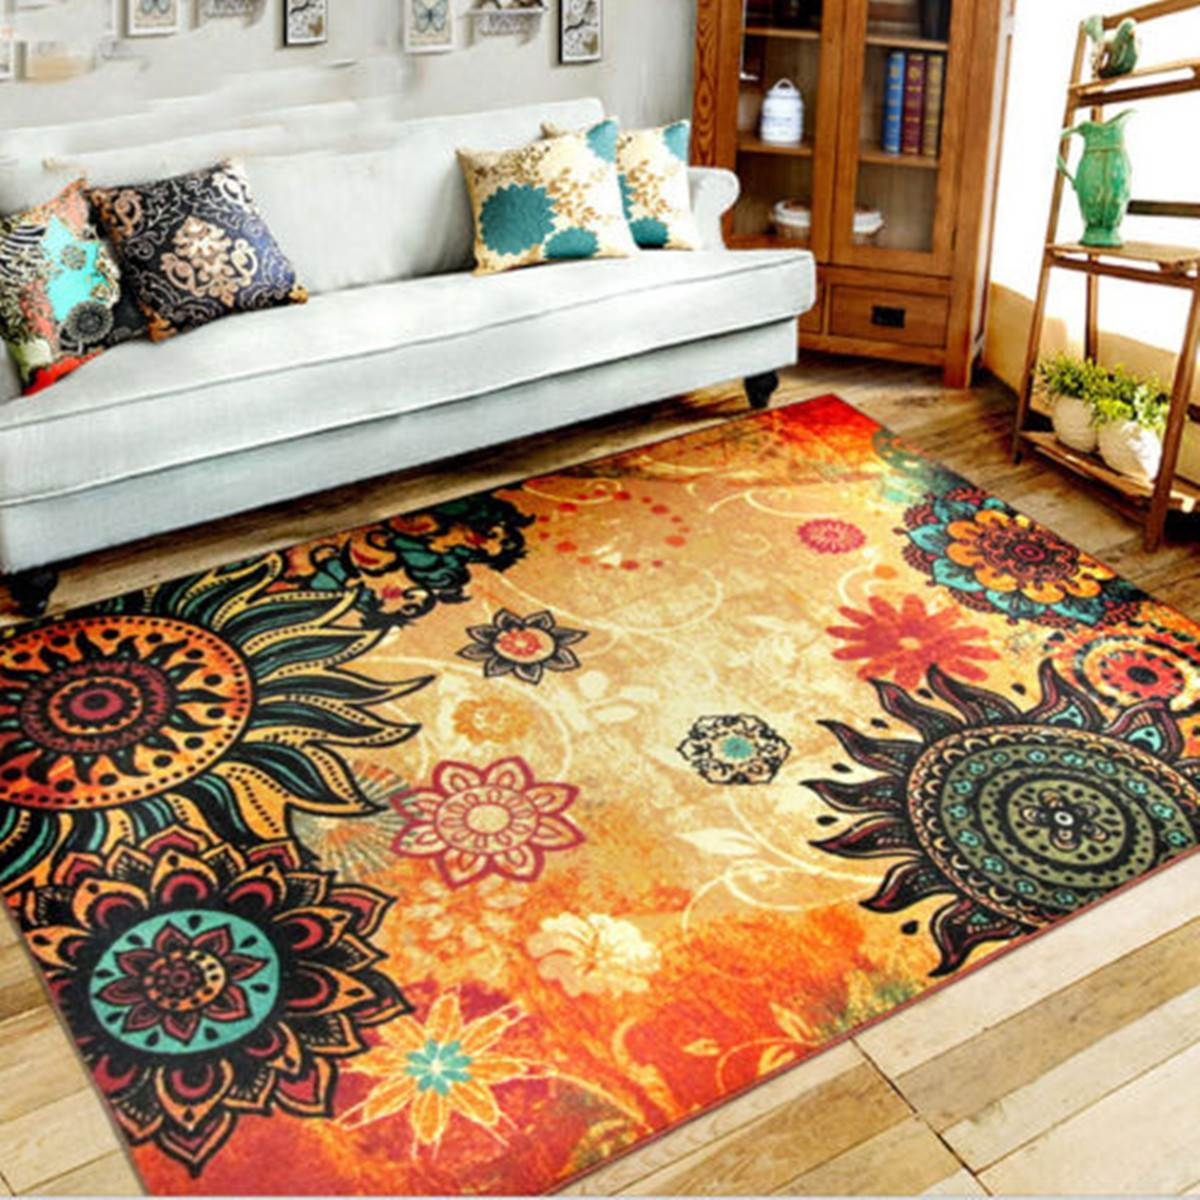 Online Get Cheap Retro Rugs Aliexpress Alibaba Group Intended For Retro Rugs (Image 6 of 15)